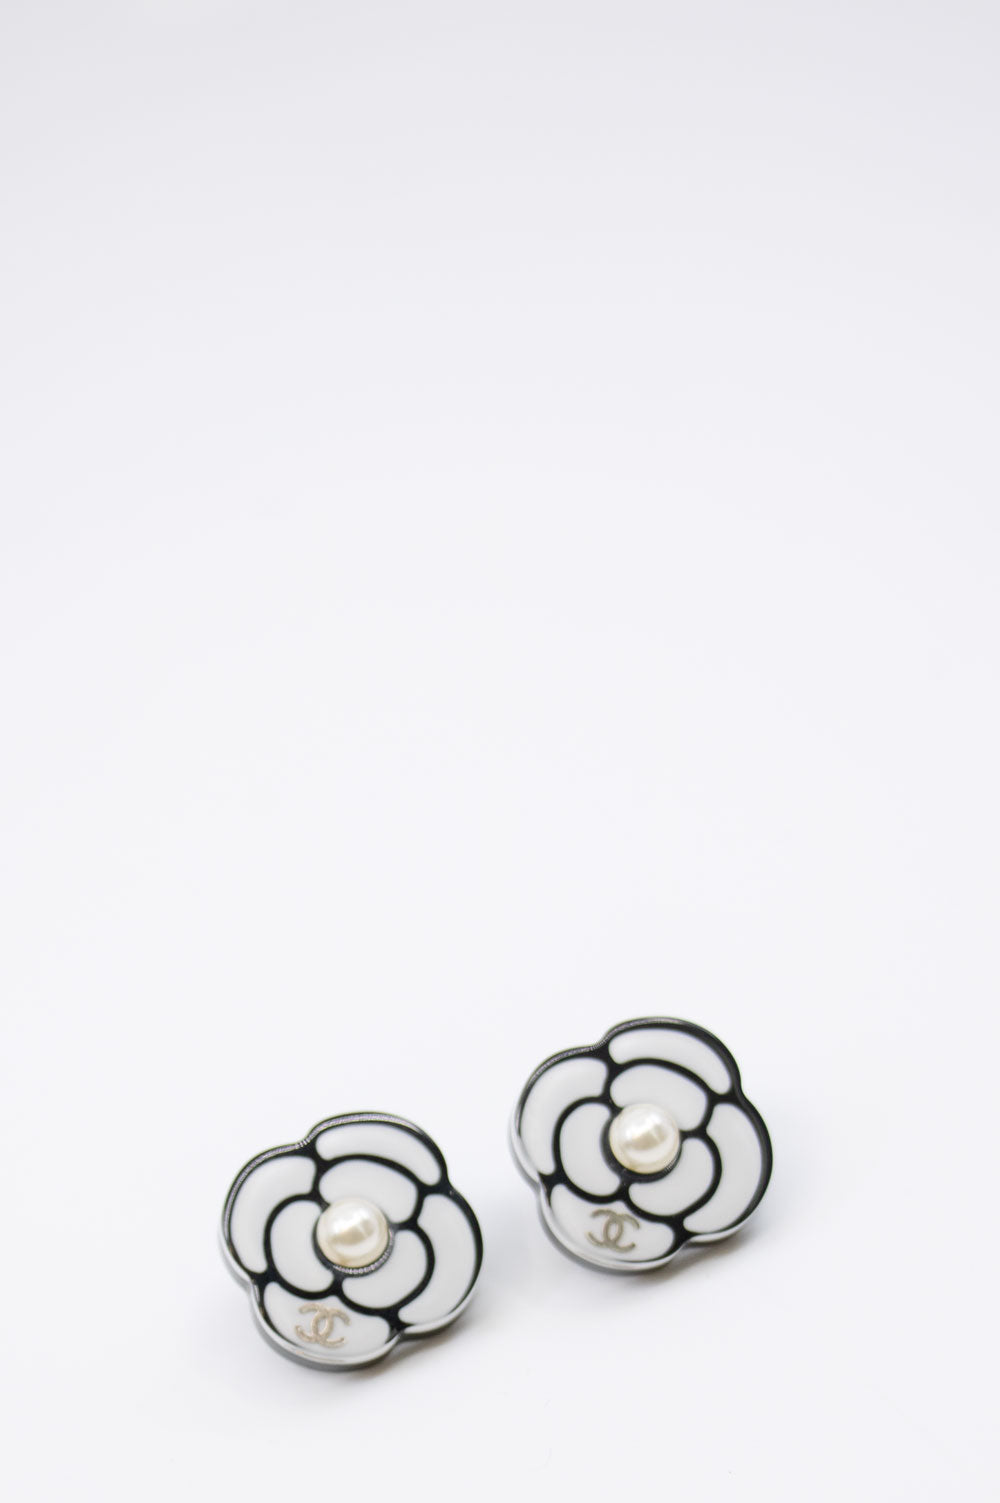 CHANEL Acrylic Earrings